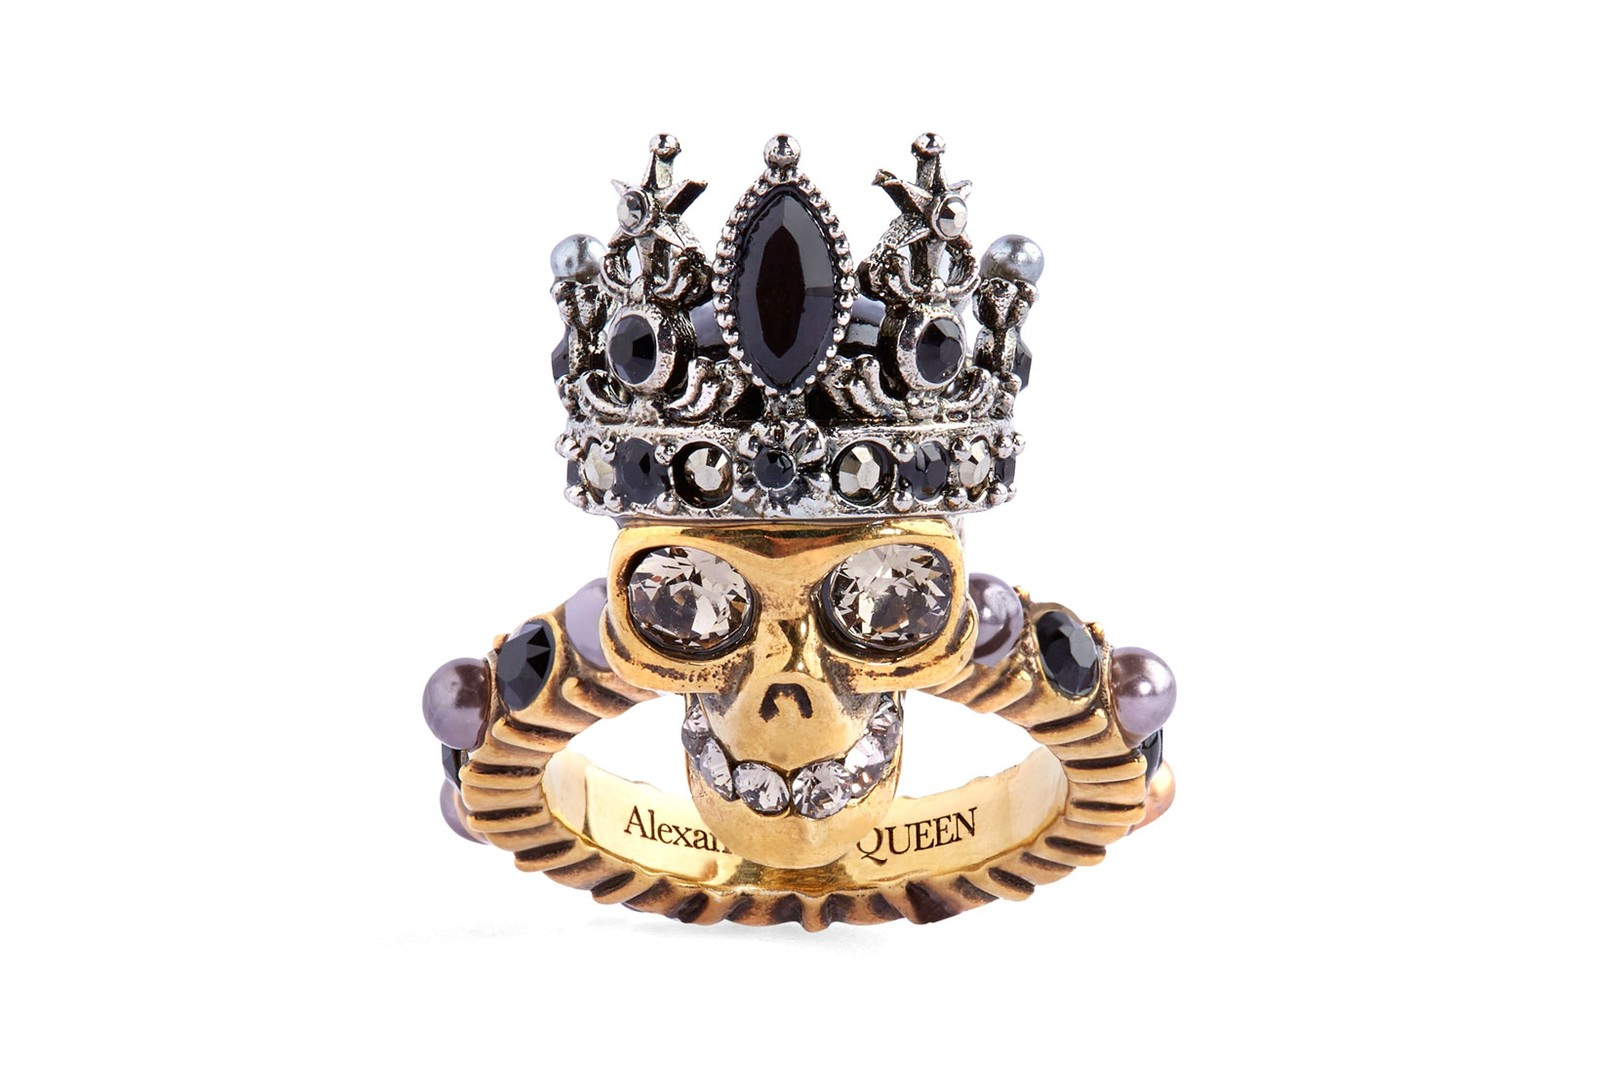 Beepy Bella x Studs Jewelry Collaboration Pumpkin Princess Earring